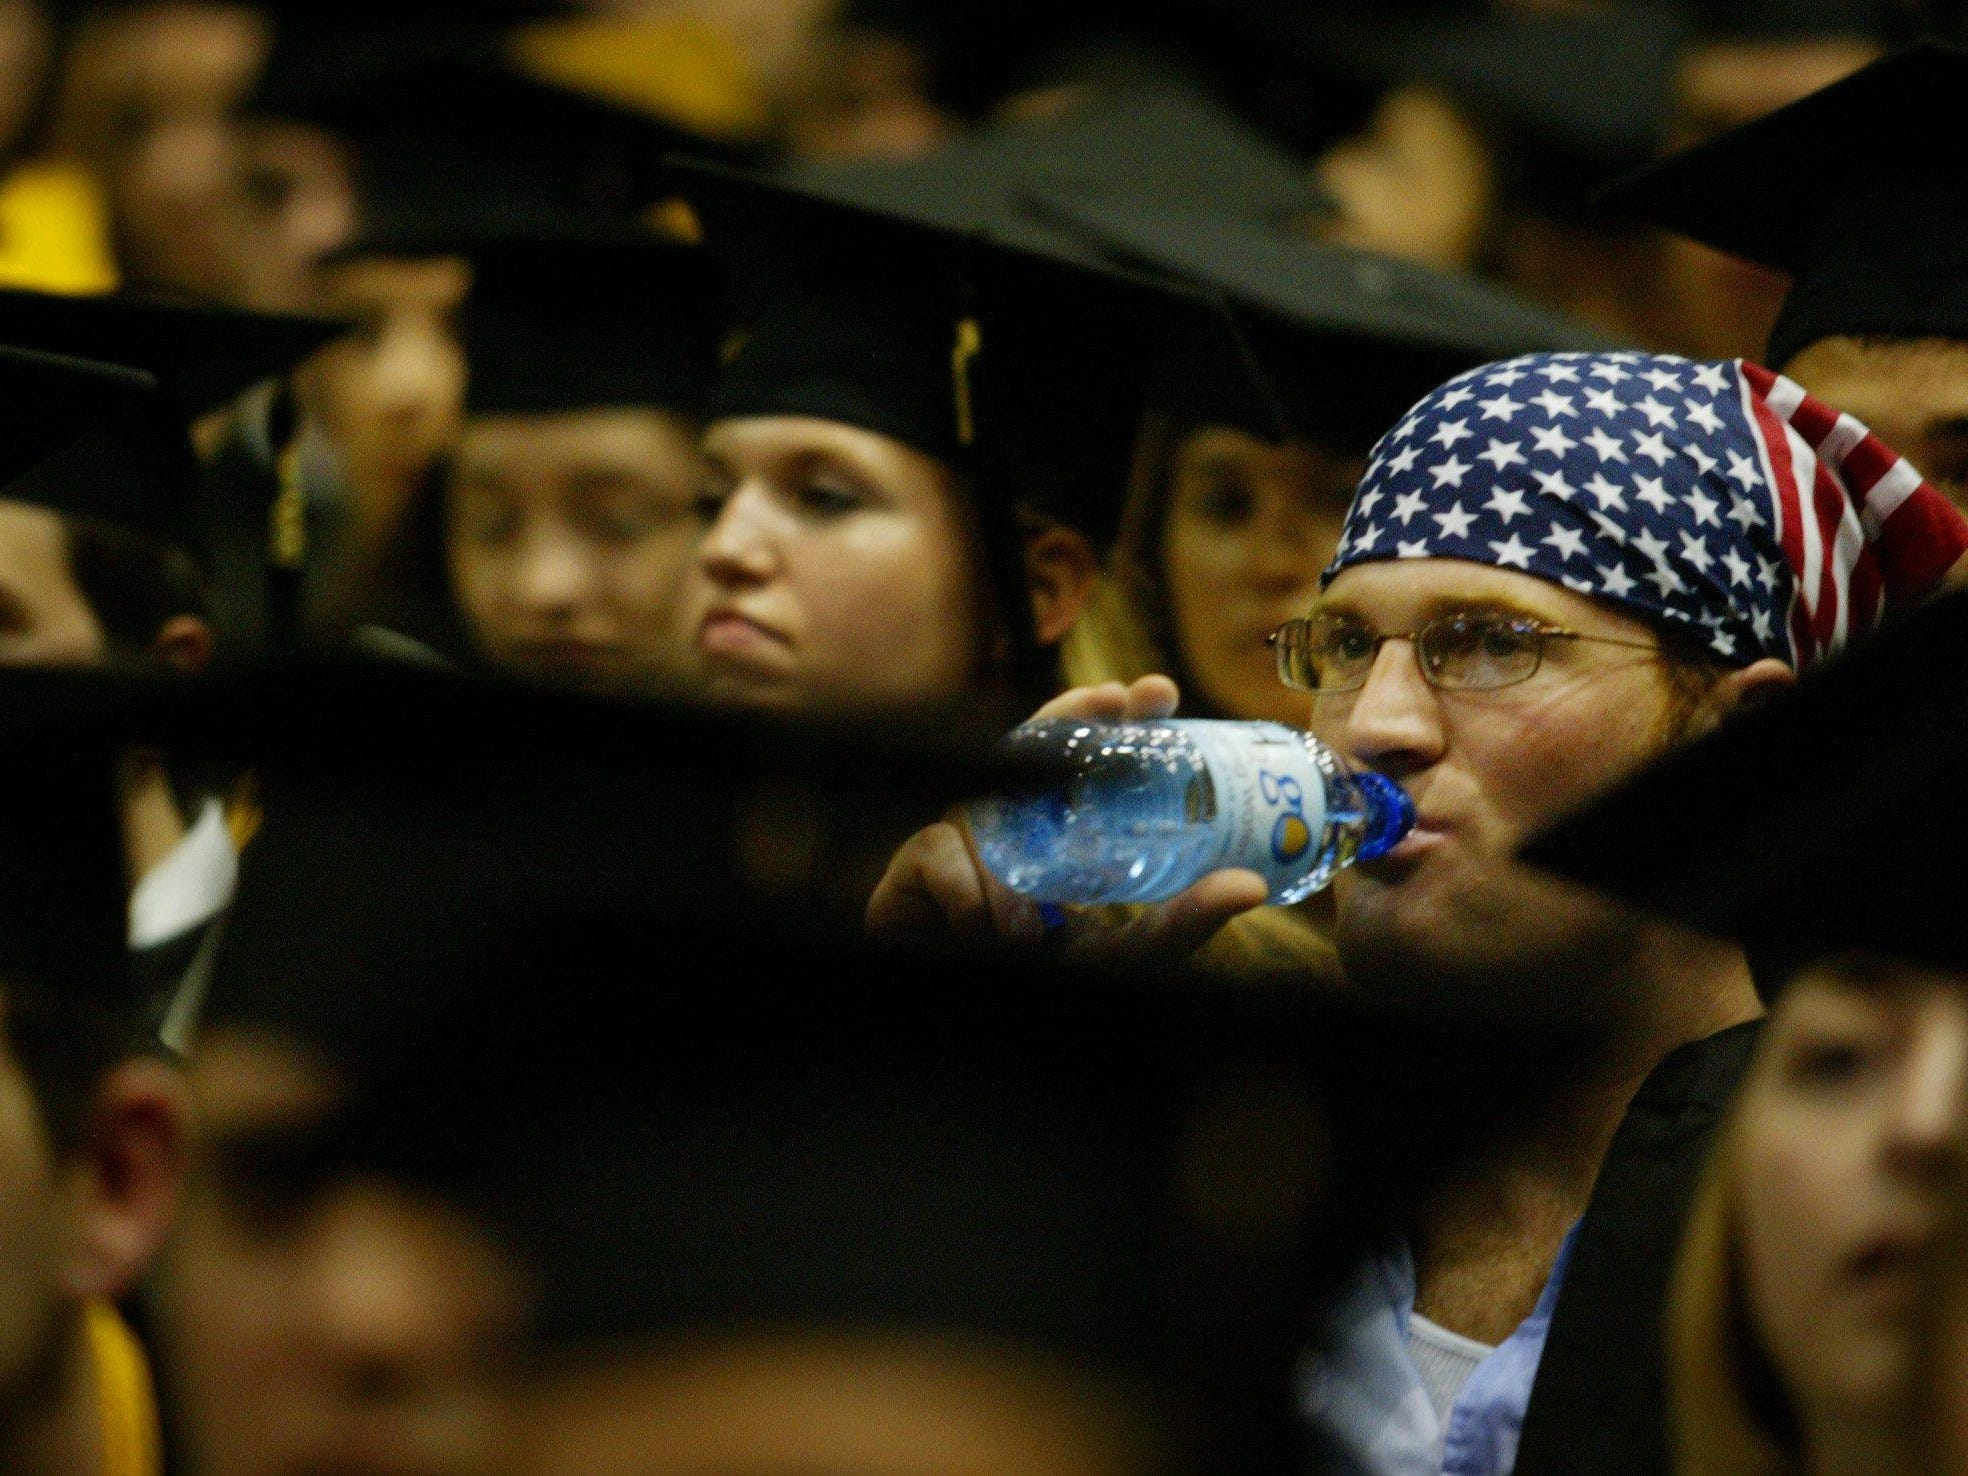 One of the few students not wearing his mortar board, English major Dean Damuth showed his patriotism during Vanderbilt's 2003 commencement ceremony Friday morning at Memorial Gym.